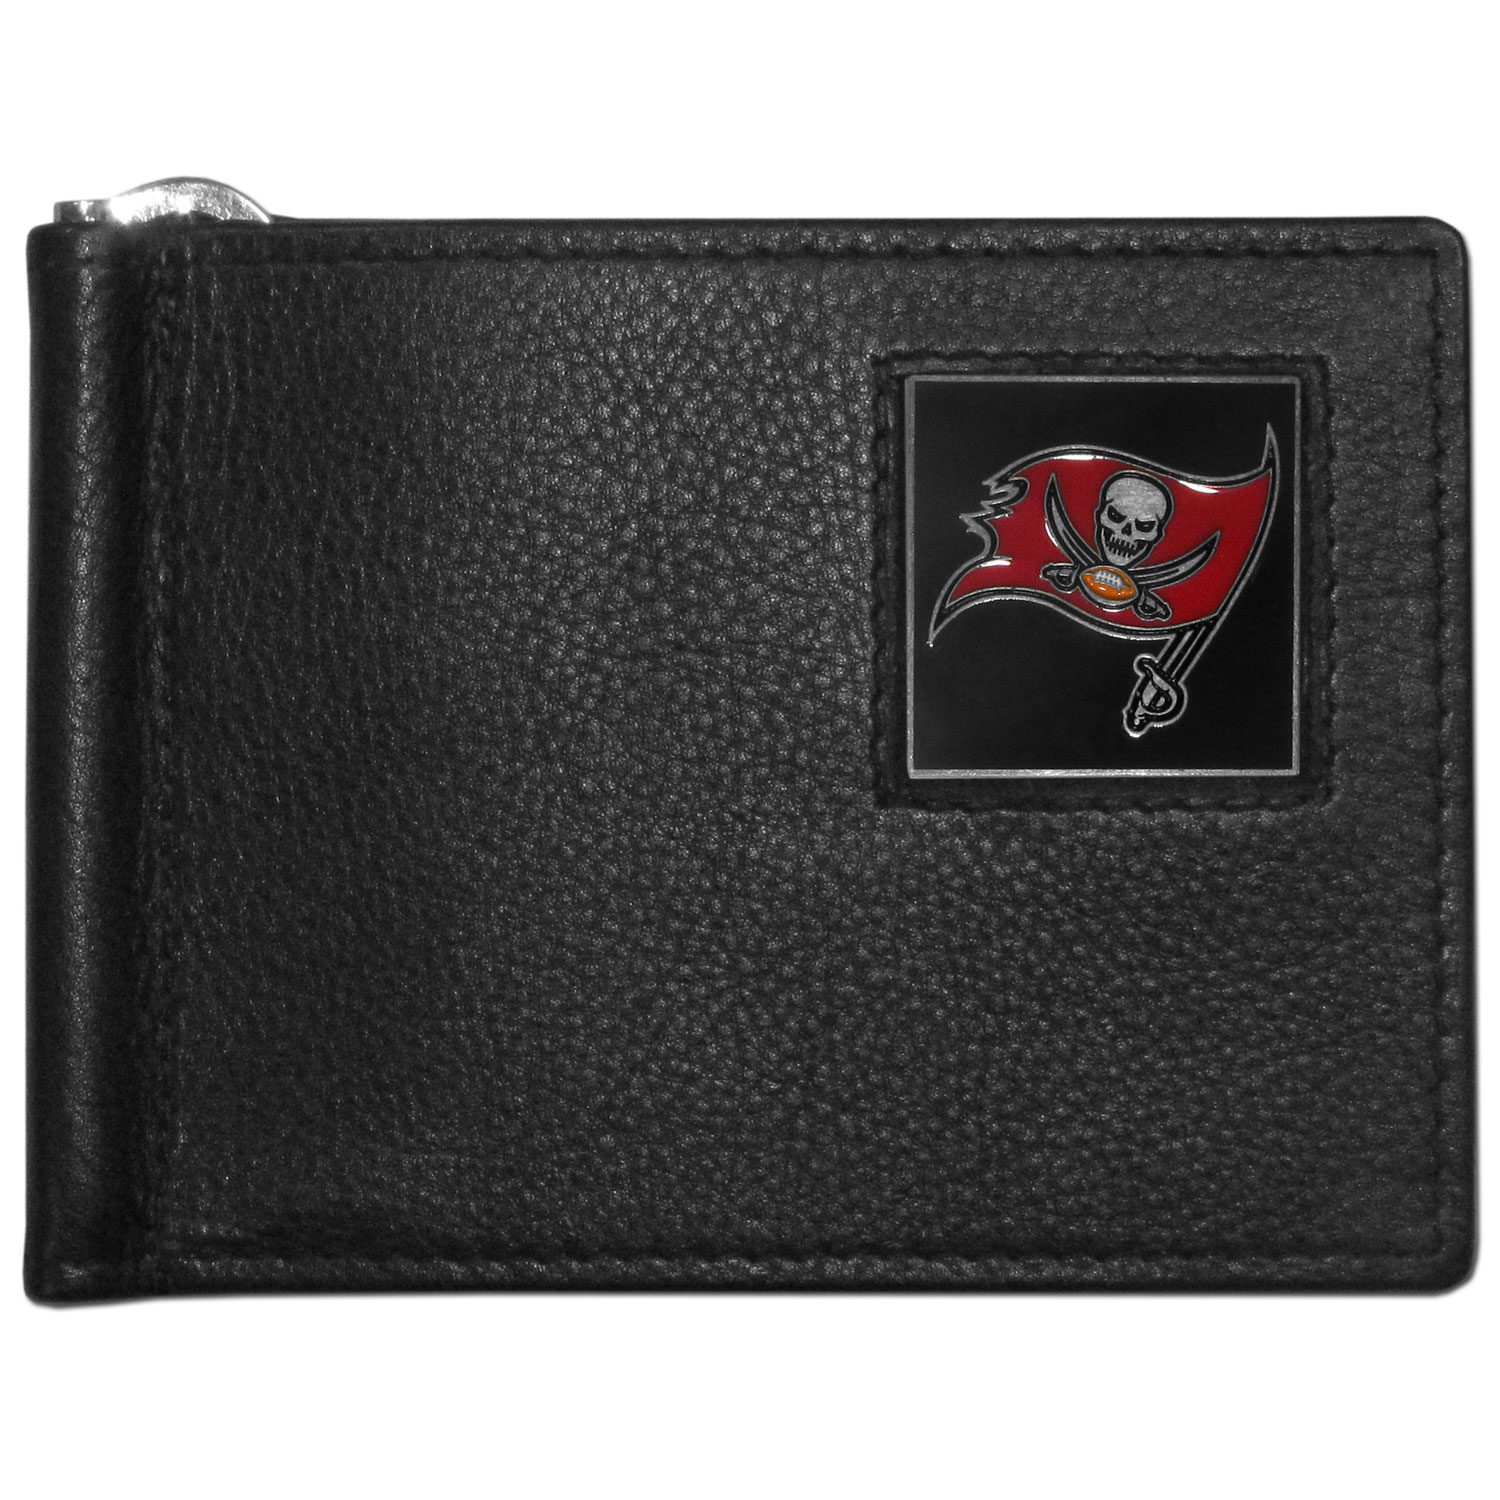 Tampa Bay Buccaneers Leather Bill Clip Wallet - This cool new style wallet features an inner, metal bill clip that lips up for easy access. The super slim wallet holds tons of stuff with ample pockets, credit card slots & windowed ID slot.  The wallet is made of genuine fine grain leather and it finished with a metal Tampa Bay Buccaneers emblem. The wallet is shipped in gift box packaging.